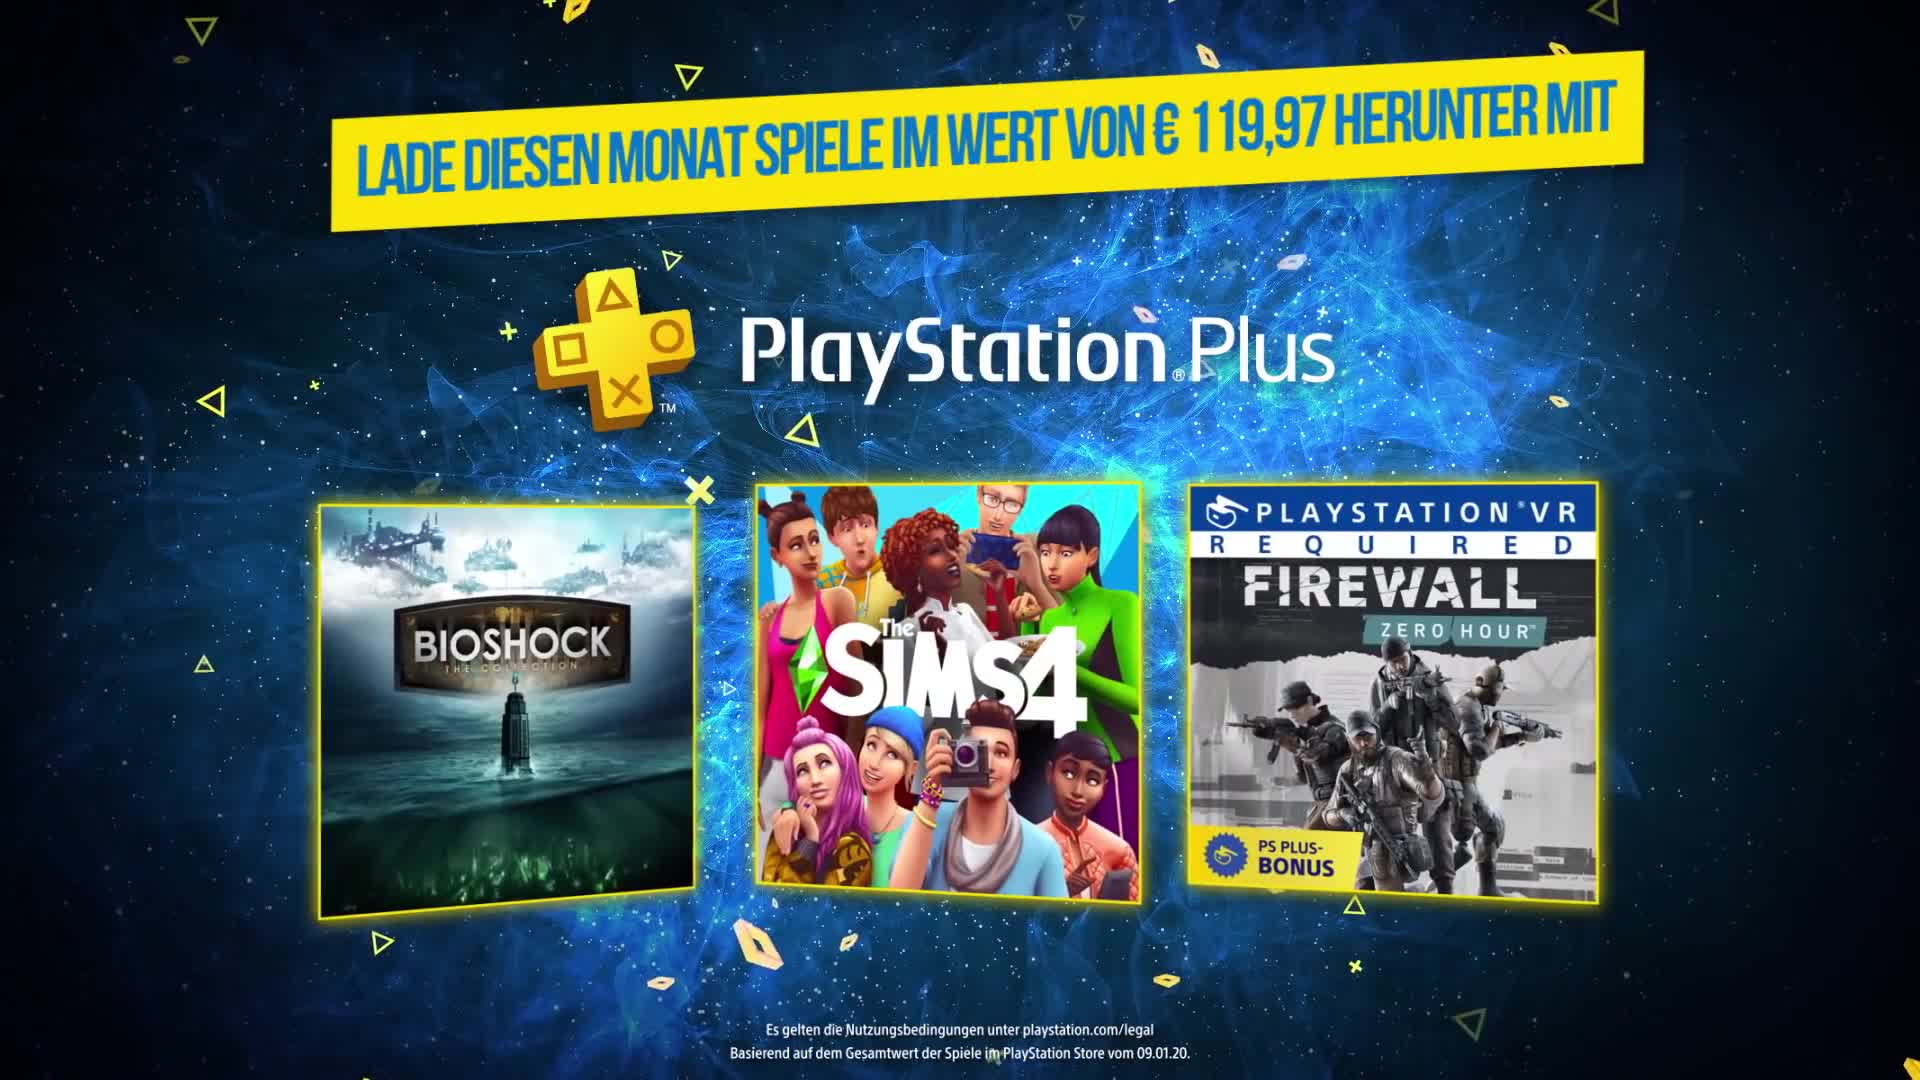 Trailer, Sony, PlayStation 4, Playstation, PS4, Sony PlayStation 4, Sony PS4, Bioshock, PlayStation VR, Bioshock Infinite, Die Sims 4, PlayStation Plus, Bioshock 2, BioShock: The Collection, PS VR, Firewall Zero Hour